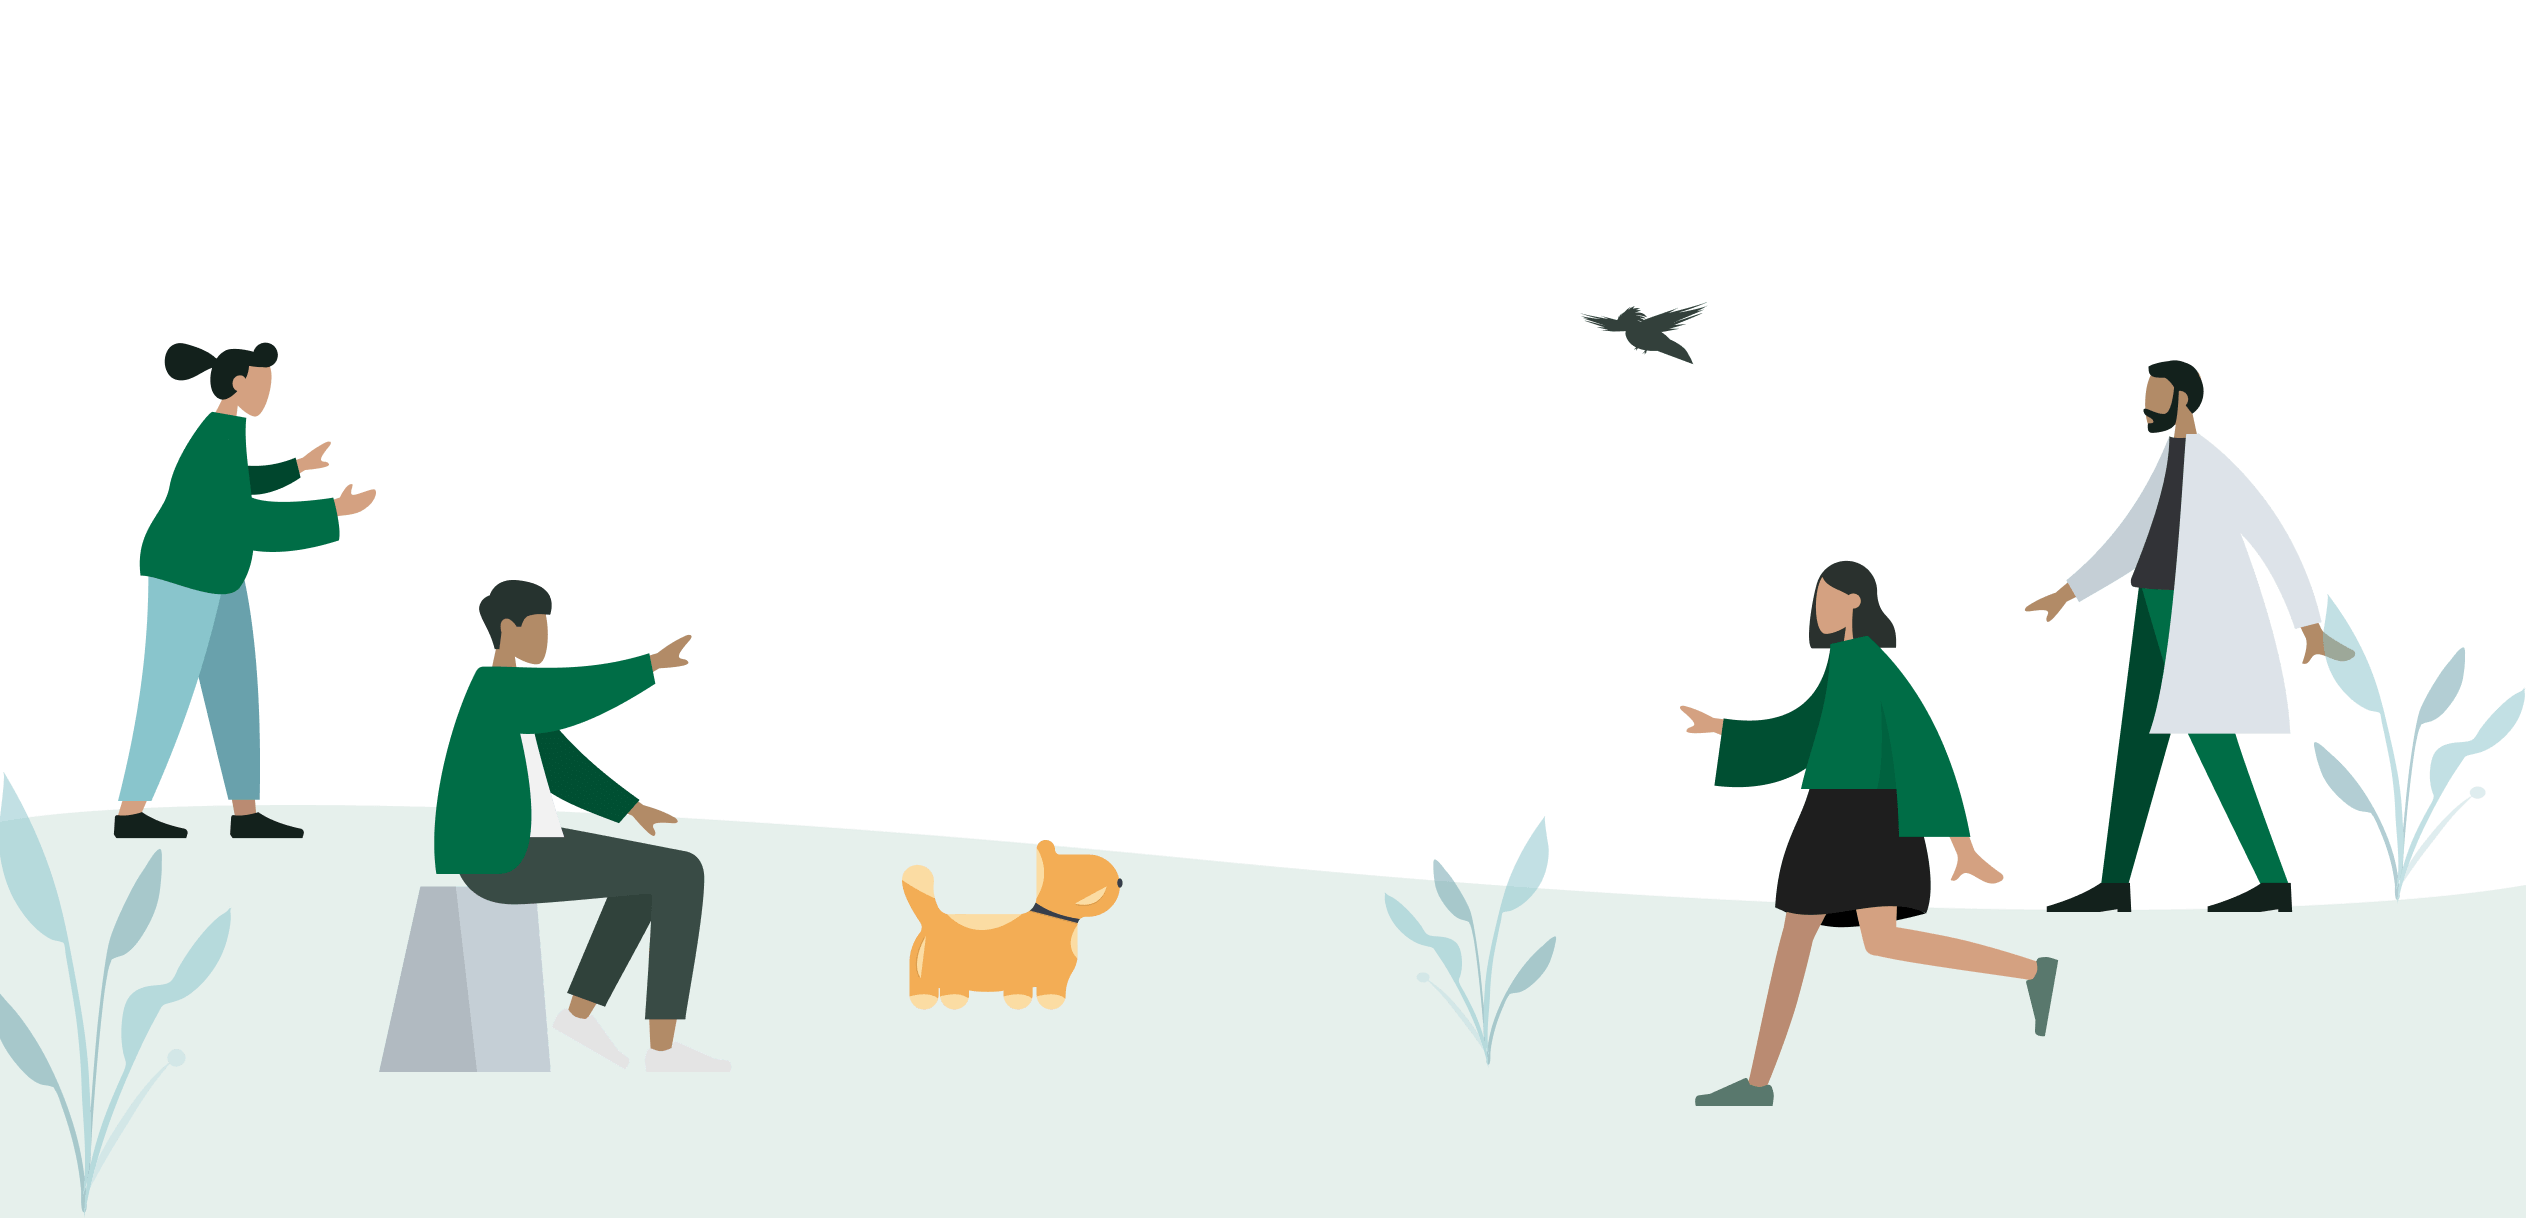 People playing in a field with a dog.